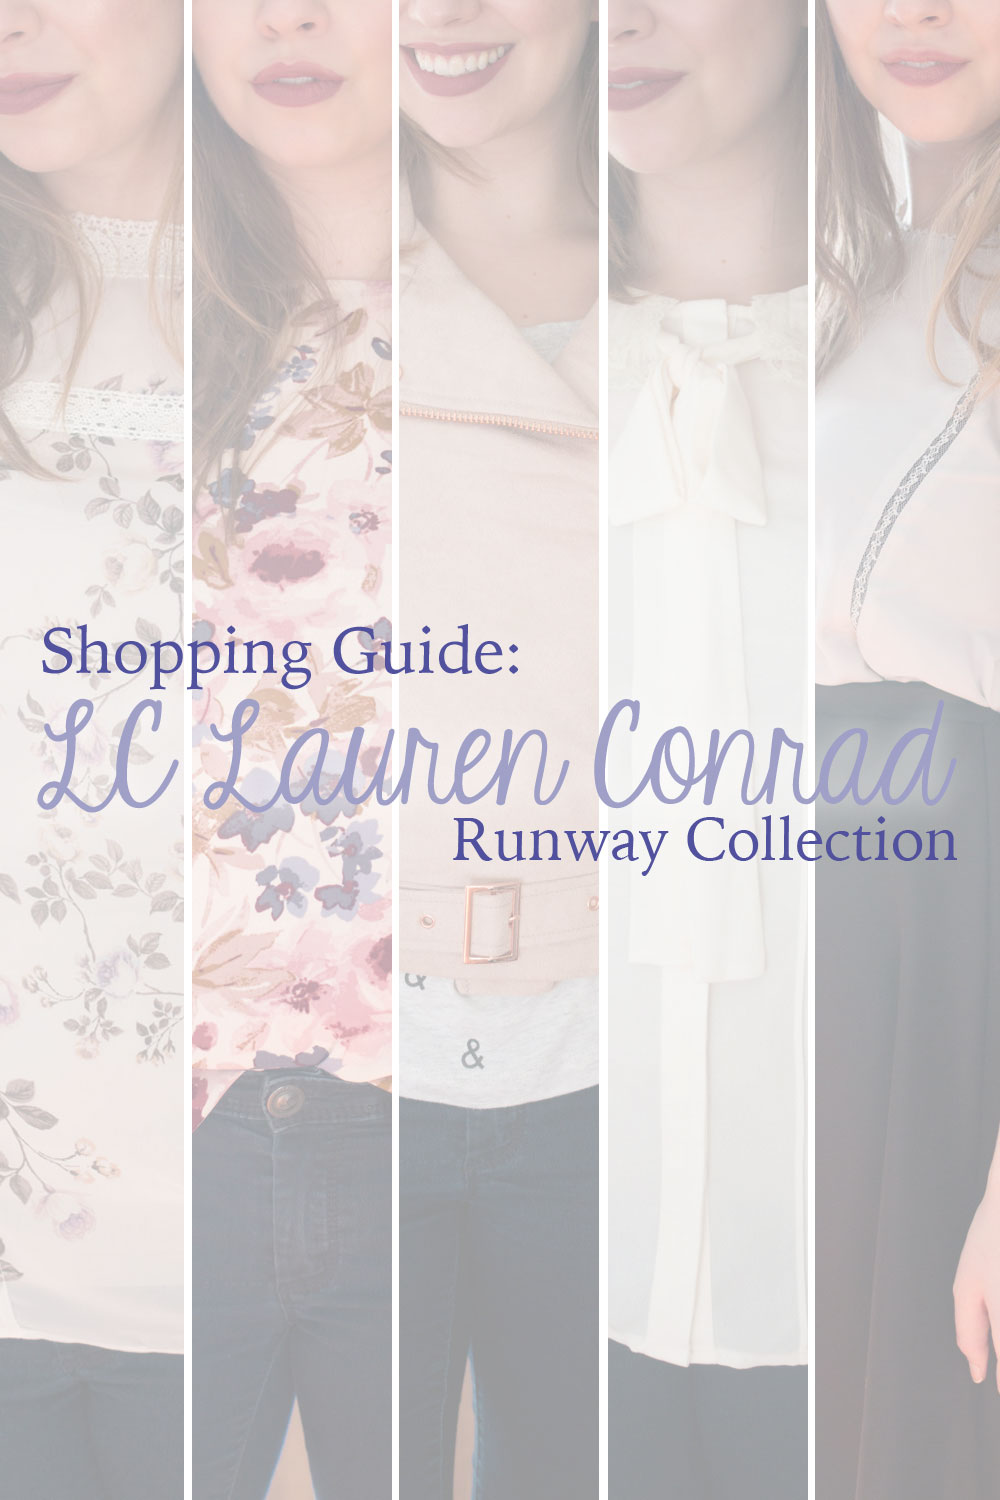 LC Lauren Conrad Runway Collection: Shopping Guide & Try On // hellorigby seattle fashion blog